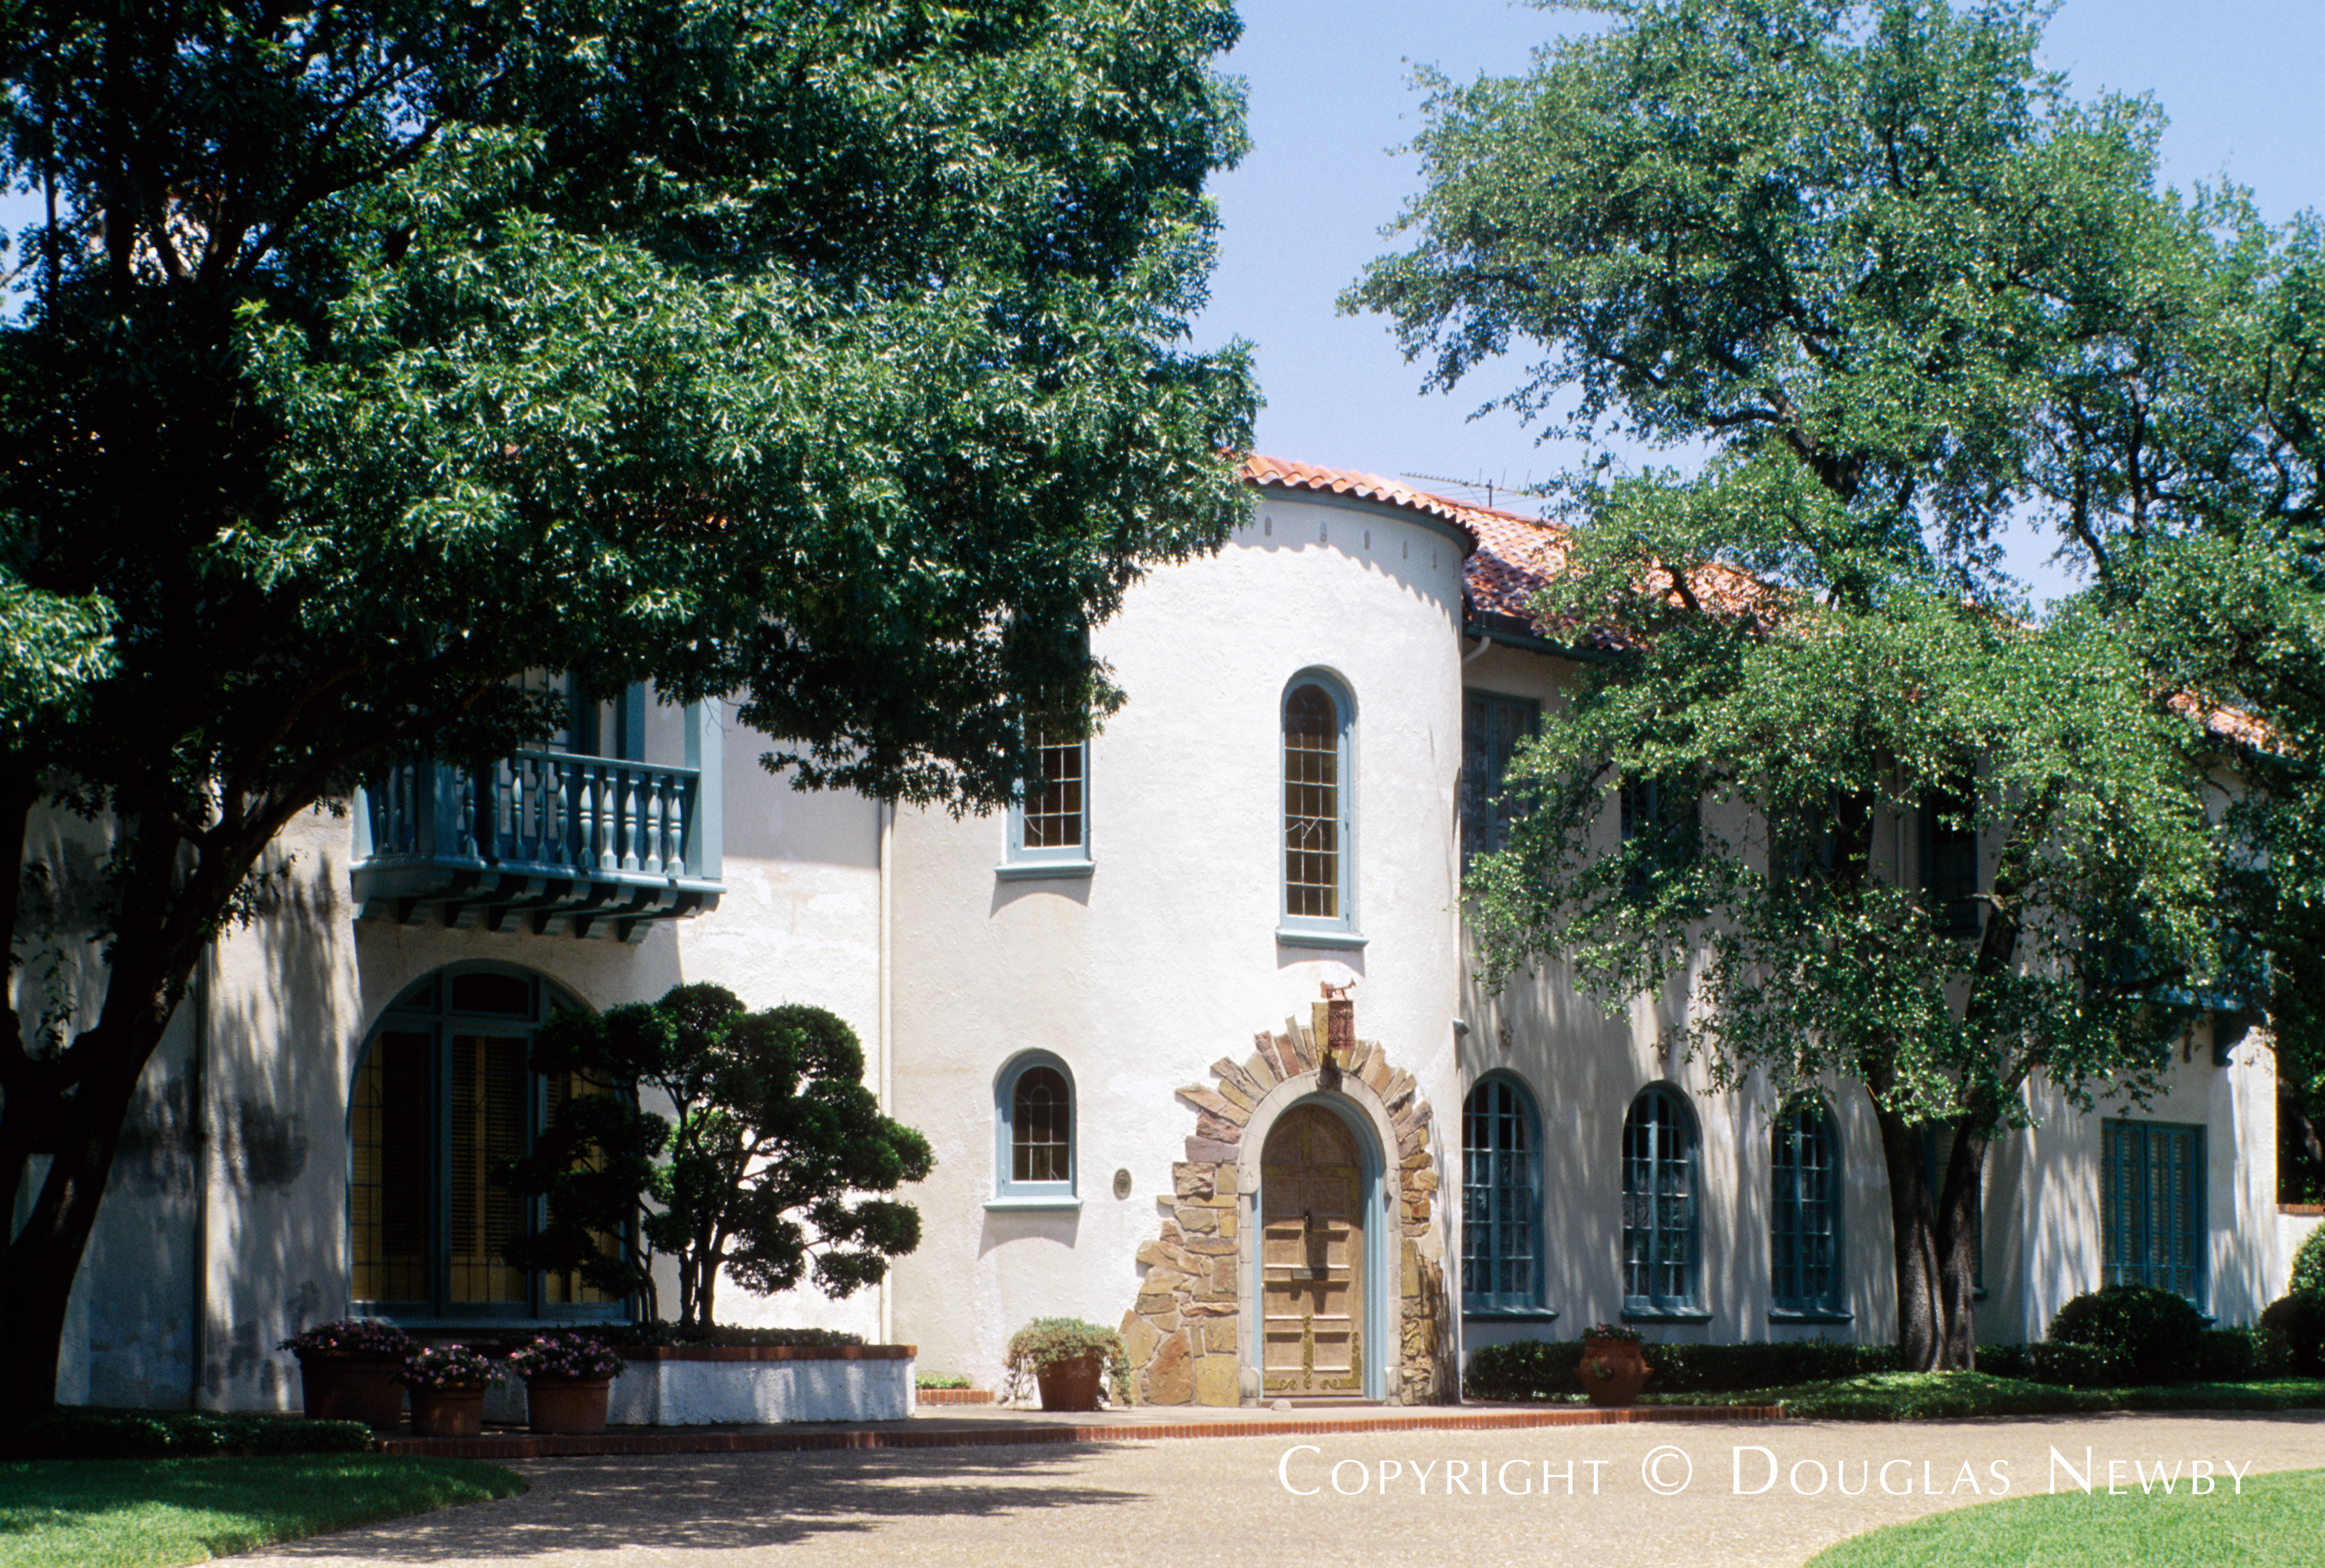 Spanish colonial architecture characteristics - Spanish Colonial Revival